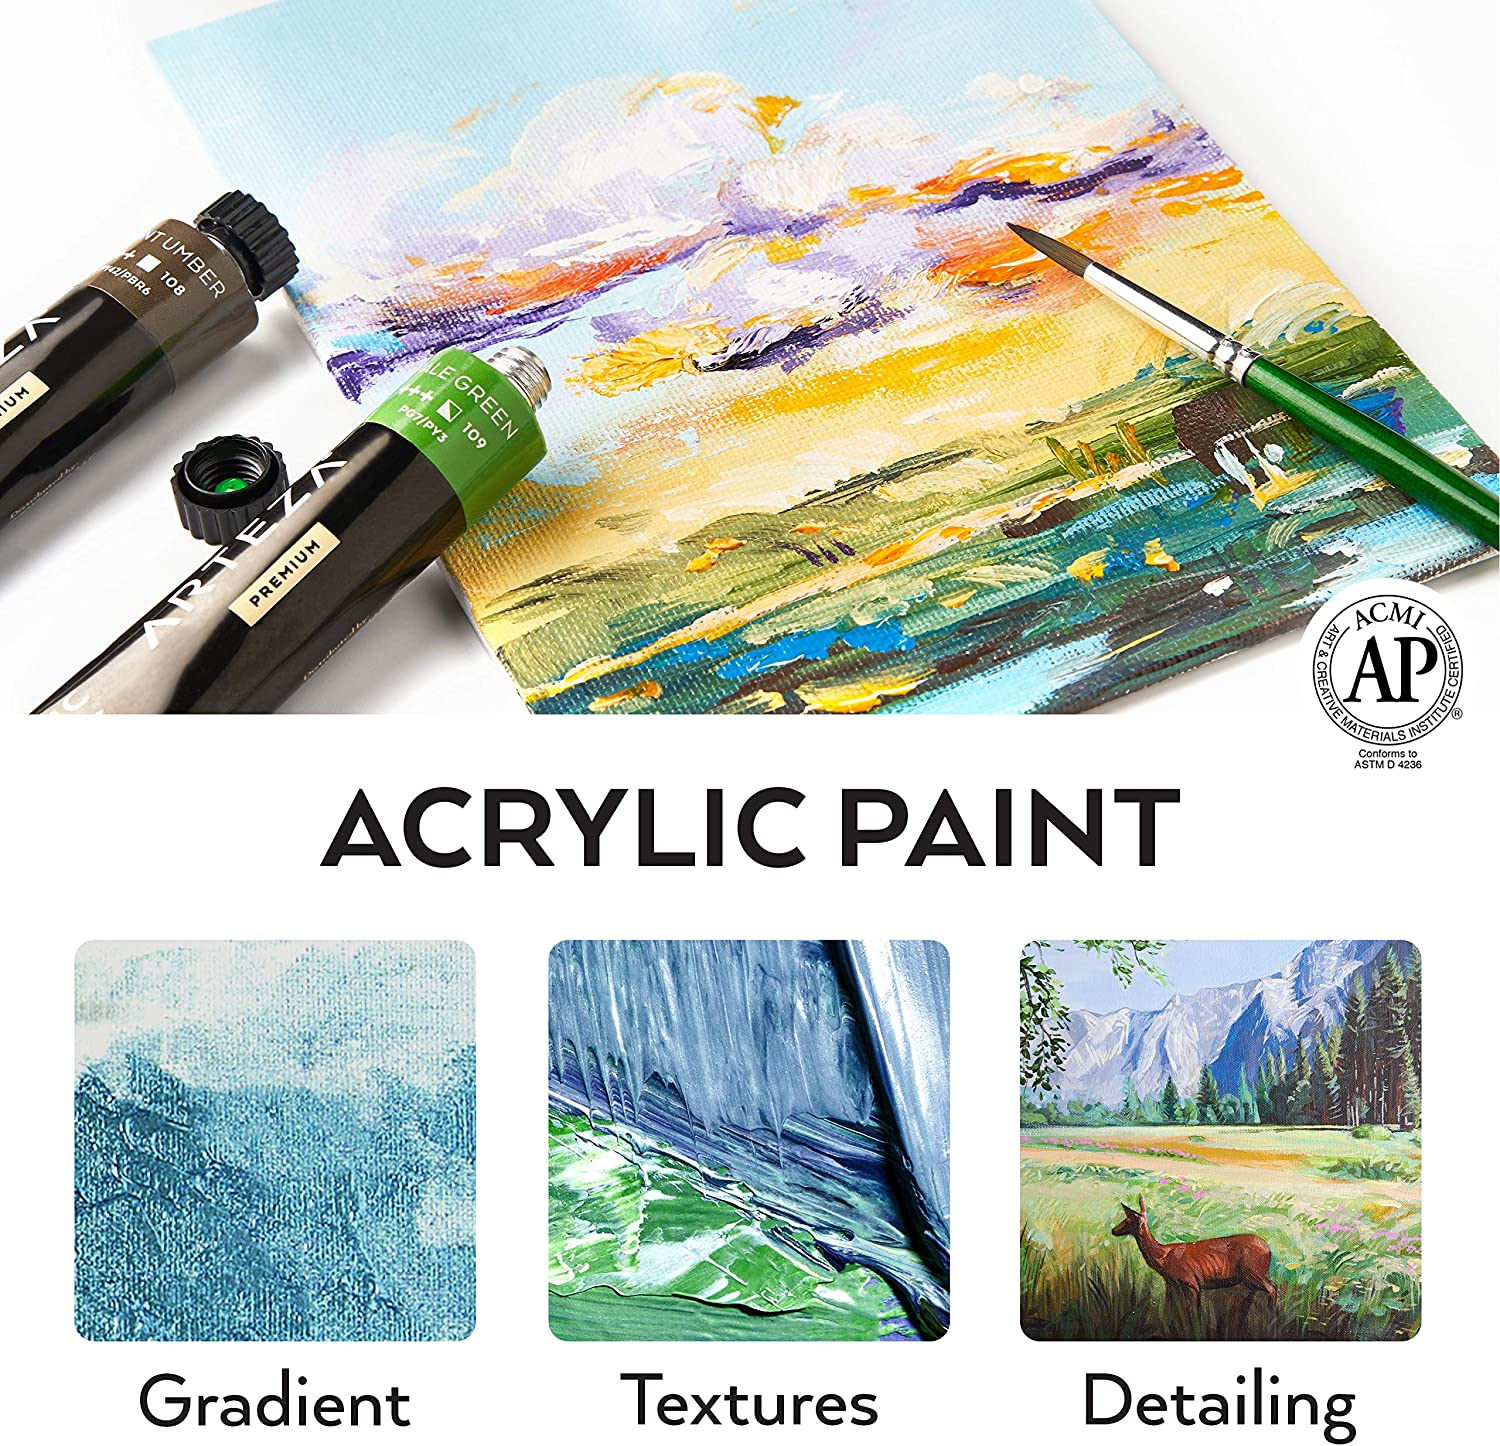 Arteza Acrylic Paint, Set of 24 Colors/Tubes (22 ml/0.74 oz.) with Storage Box, Rich Pigments, Non Fading, Non Toxic Paints for Artist, Hobby Painters & Kids, Ideal for Canvas Painting